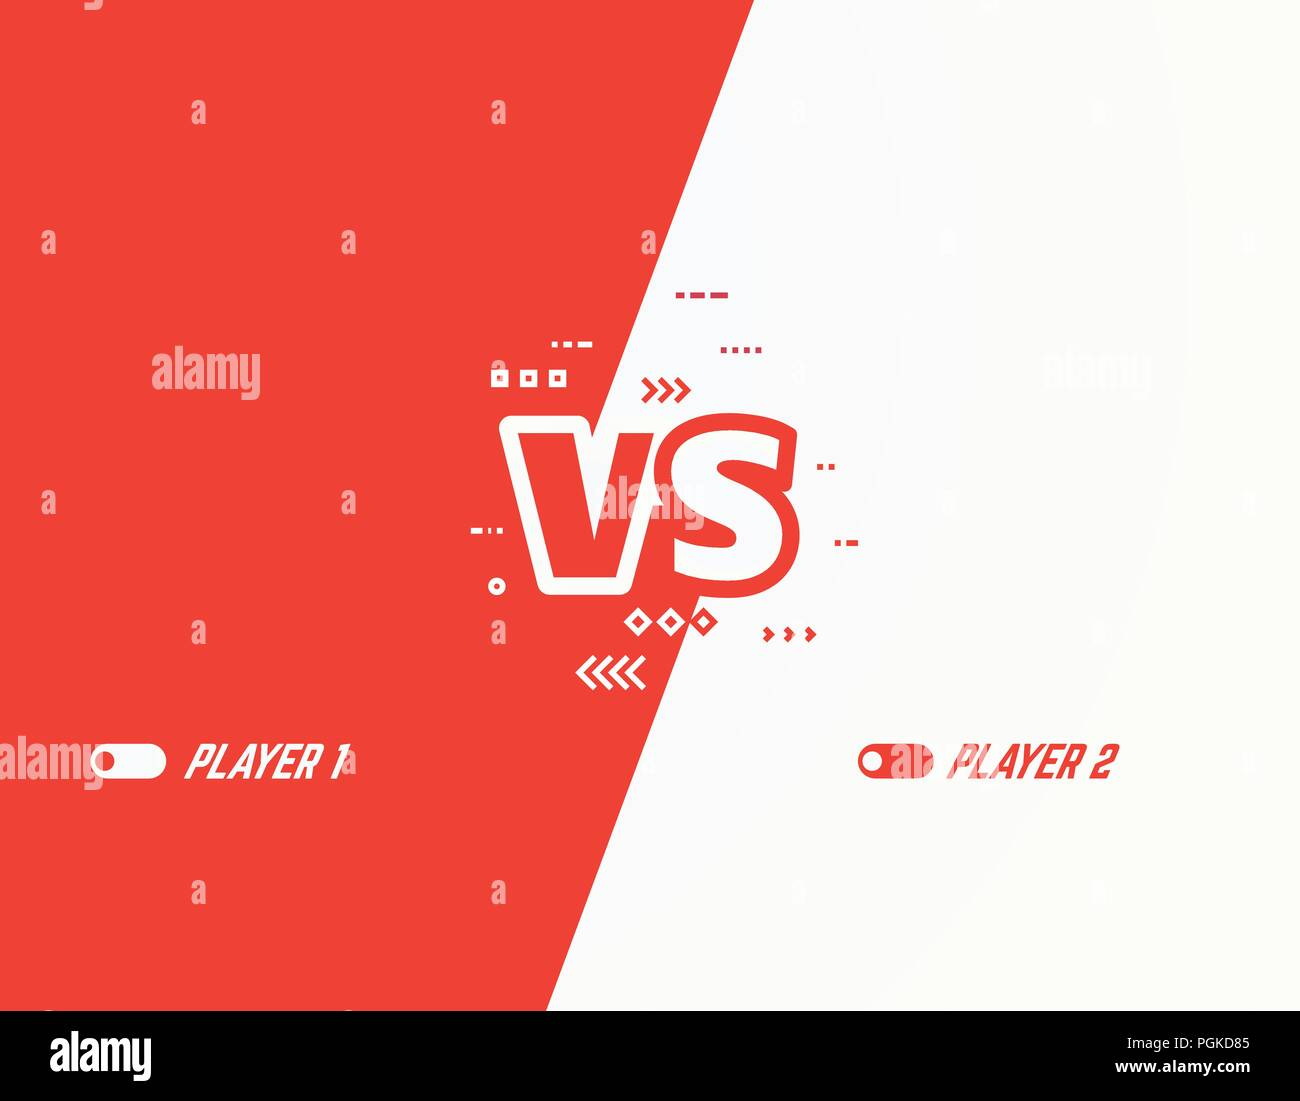 Versus vector template background. Battle or competition concept template. Red and white players. Video games or fighting competitors. VS letters and  - Stock Vector